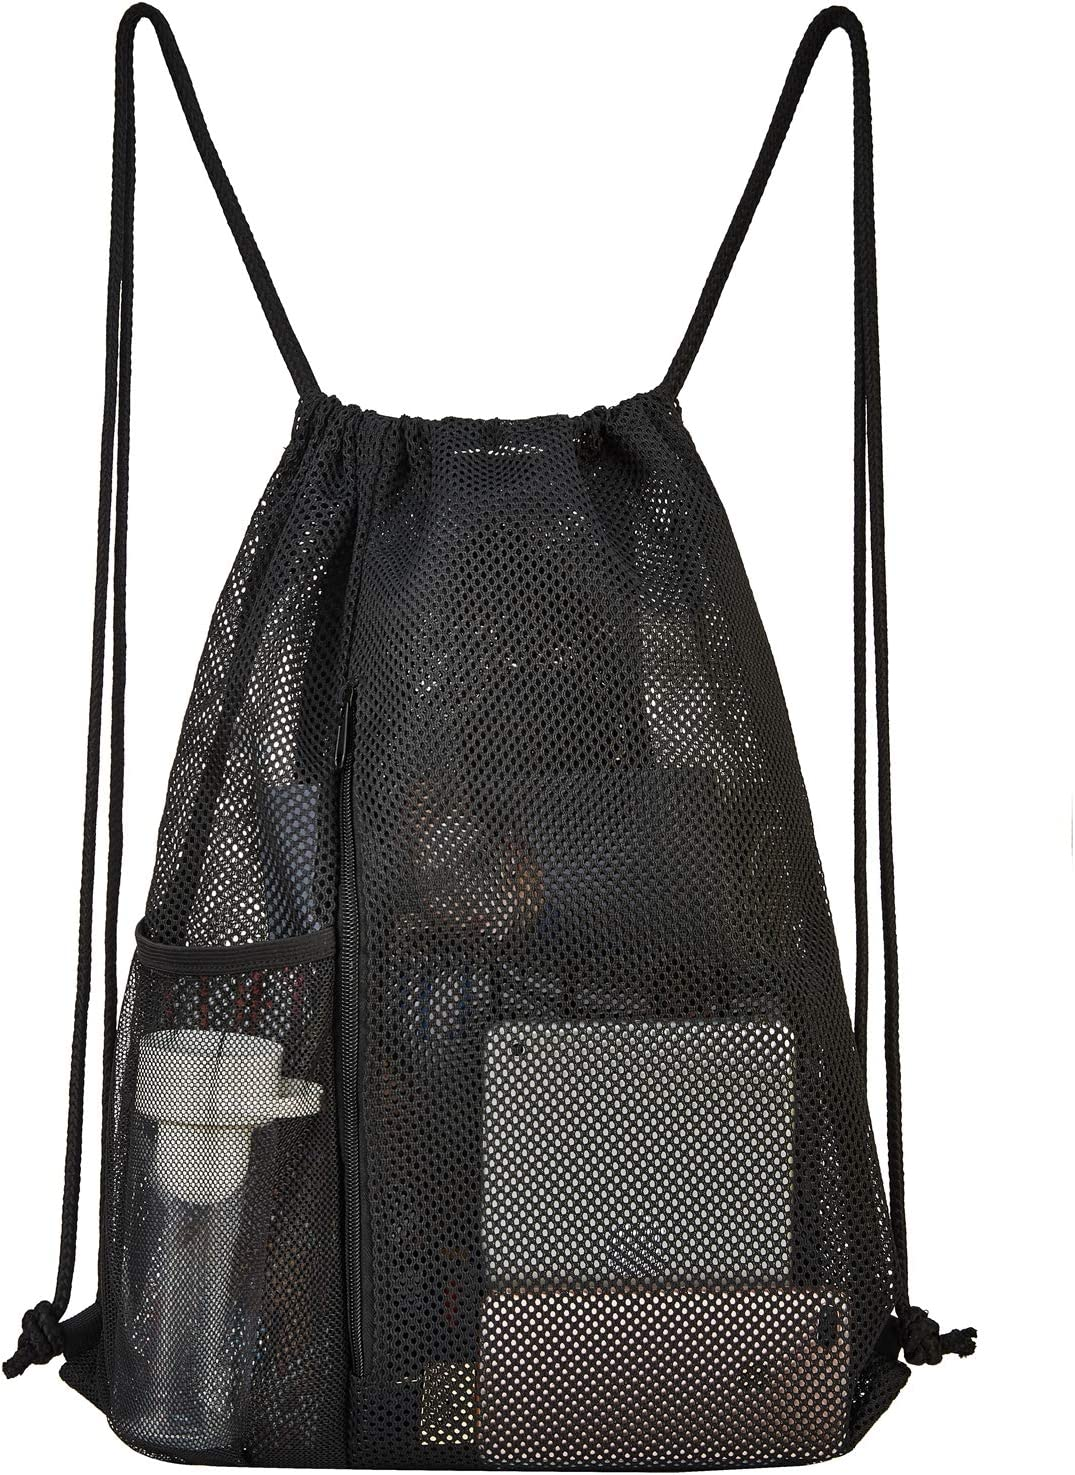 Heavy Duty Mesh Drawstring bag for Soccer Ball Drawstring Backpack Sports Gym Bag for Women Men Large Size with Zipper and Water Bottle Mesh Pockets Beach Toys